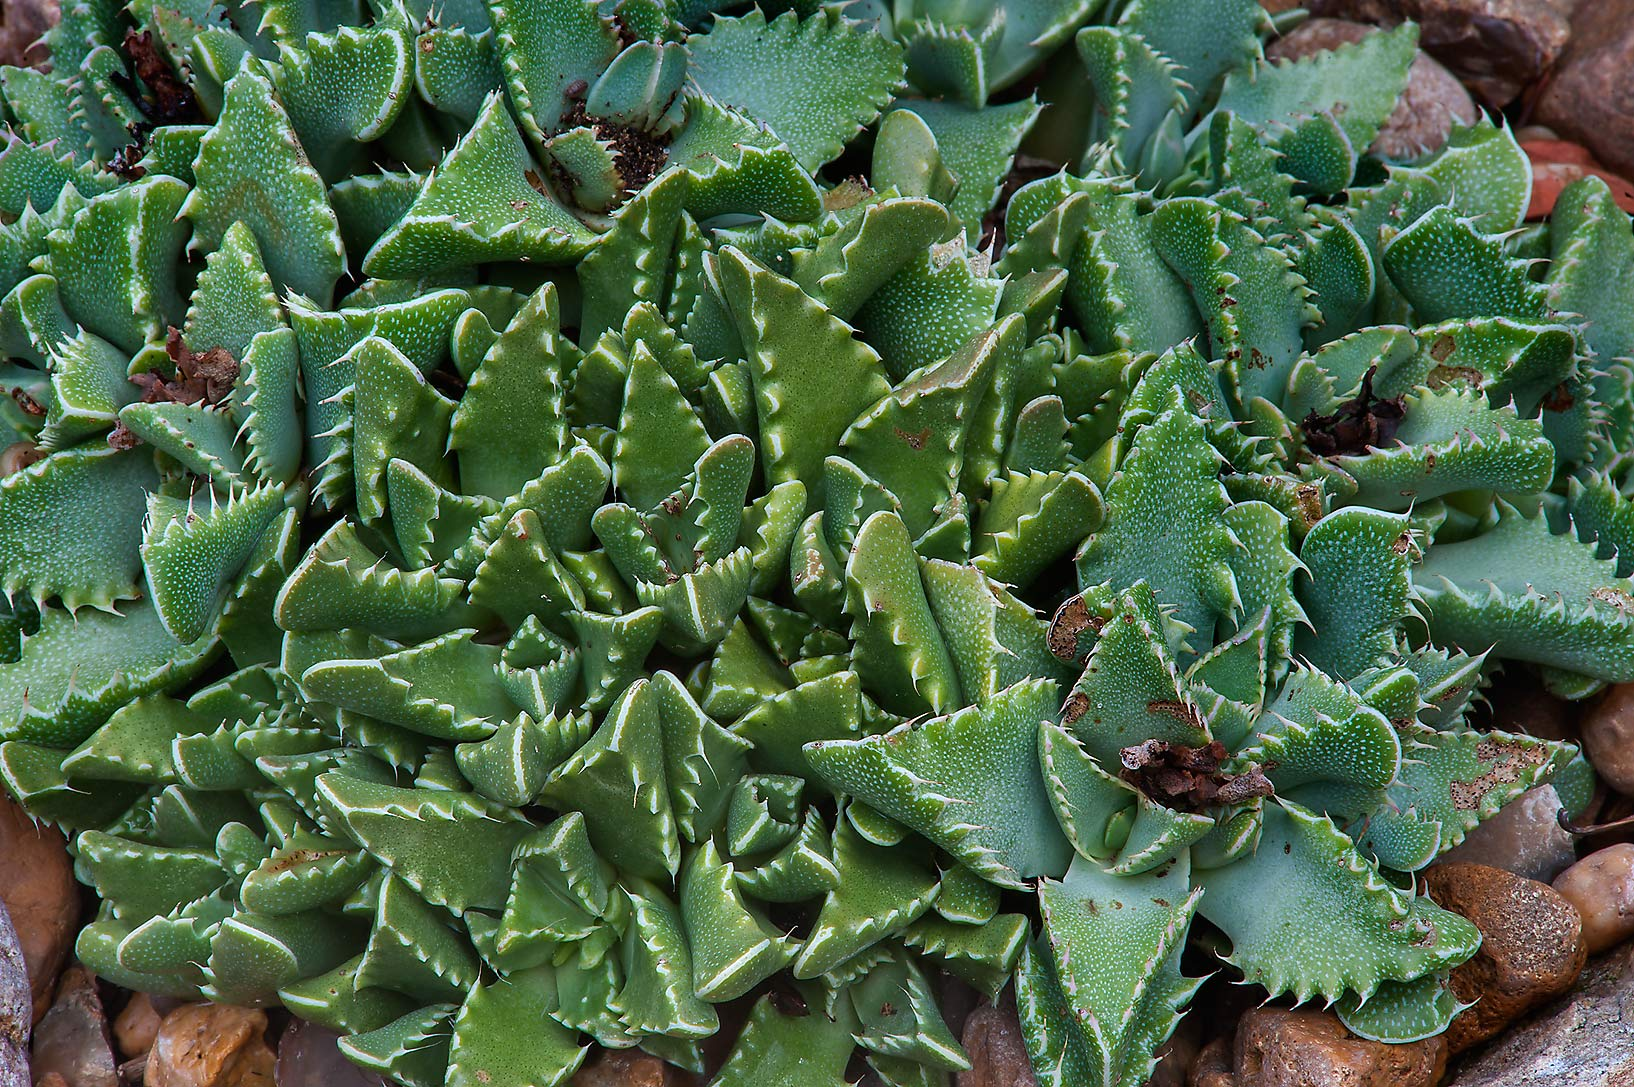 Tiger jaws succulent plant (Faucaria) in Mercer...Gardens. Humble (Houston area), Texas